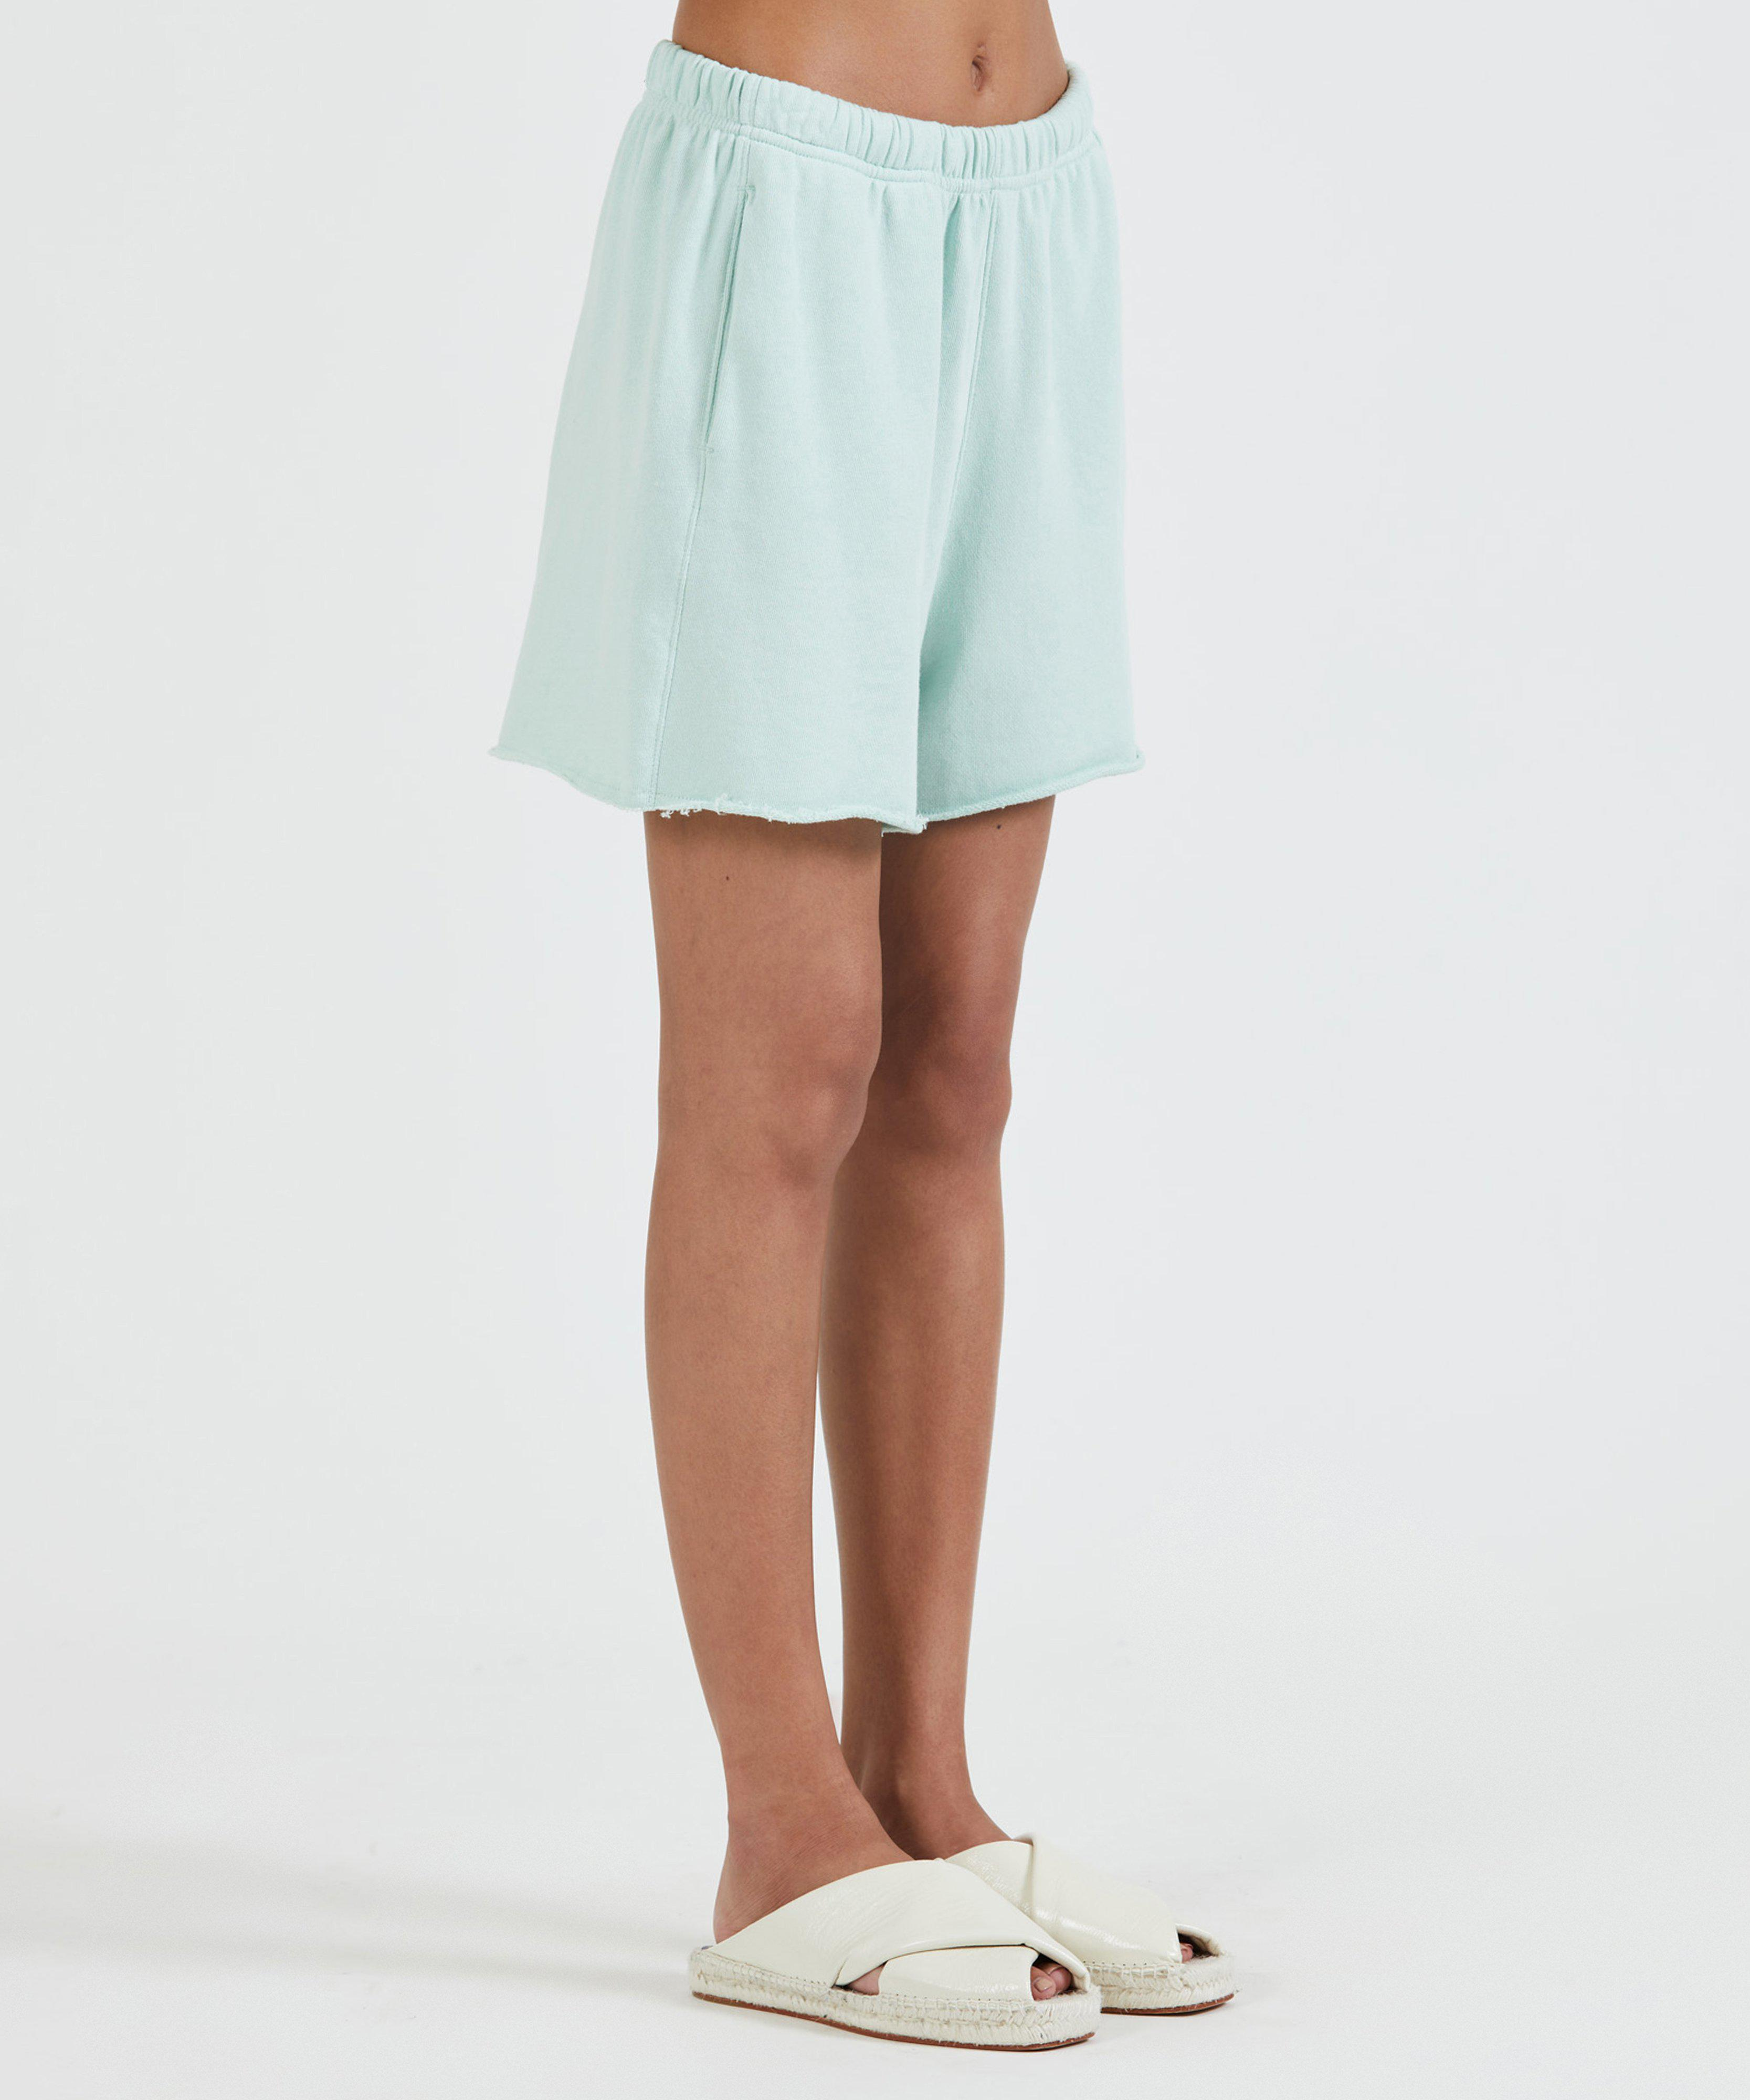 French Terry Pull-On Short - Mint 1